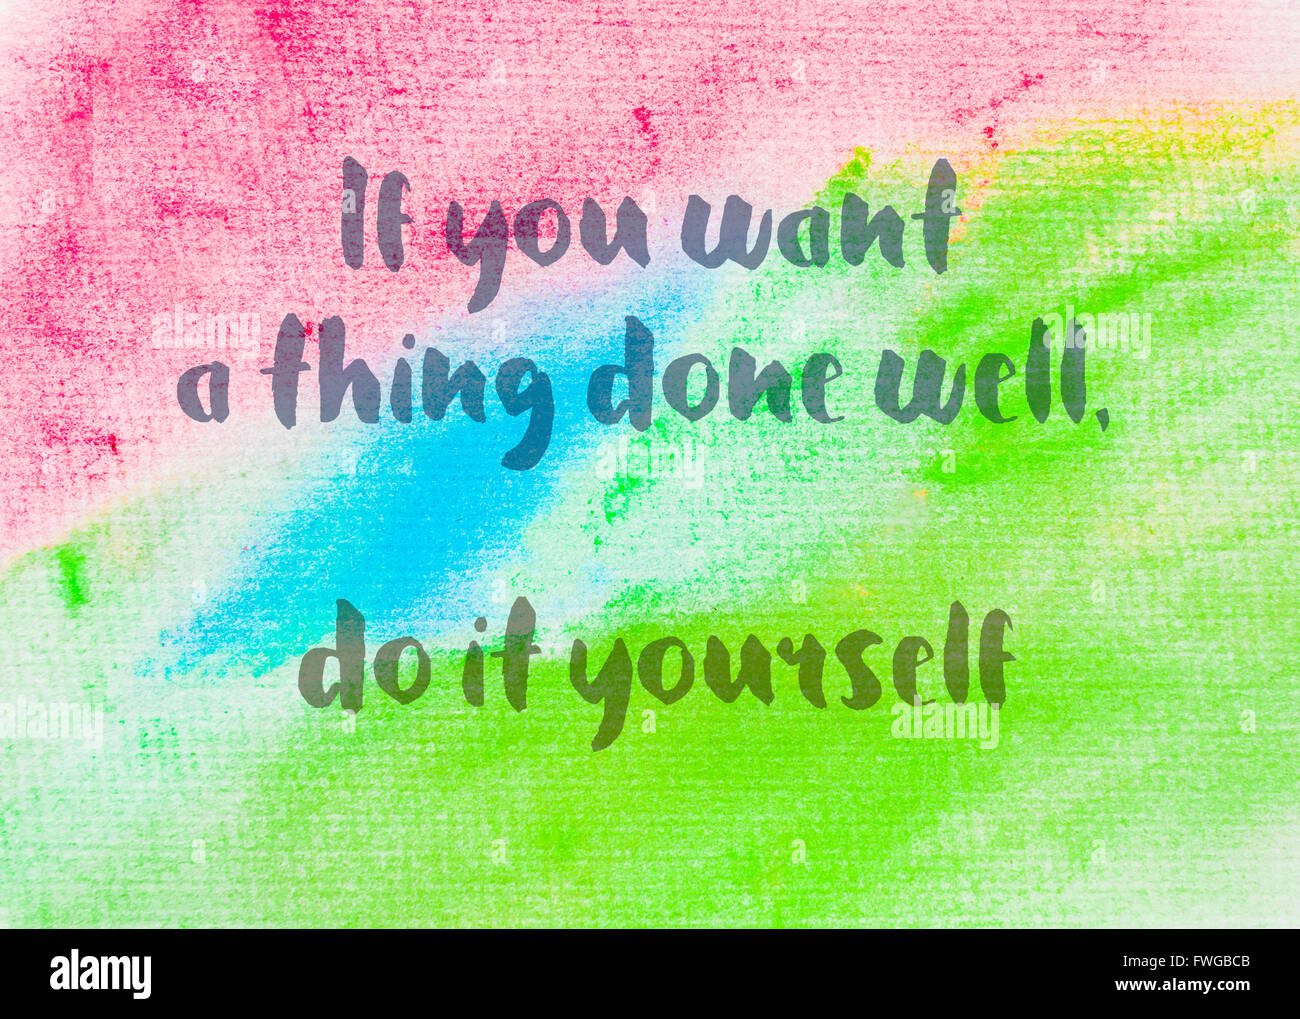 Quote poster yourself stock photos quote poster yourself stock if you want a thing done well do it yourself inspirational quote over abstract solutioingenieria Gallery